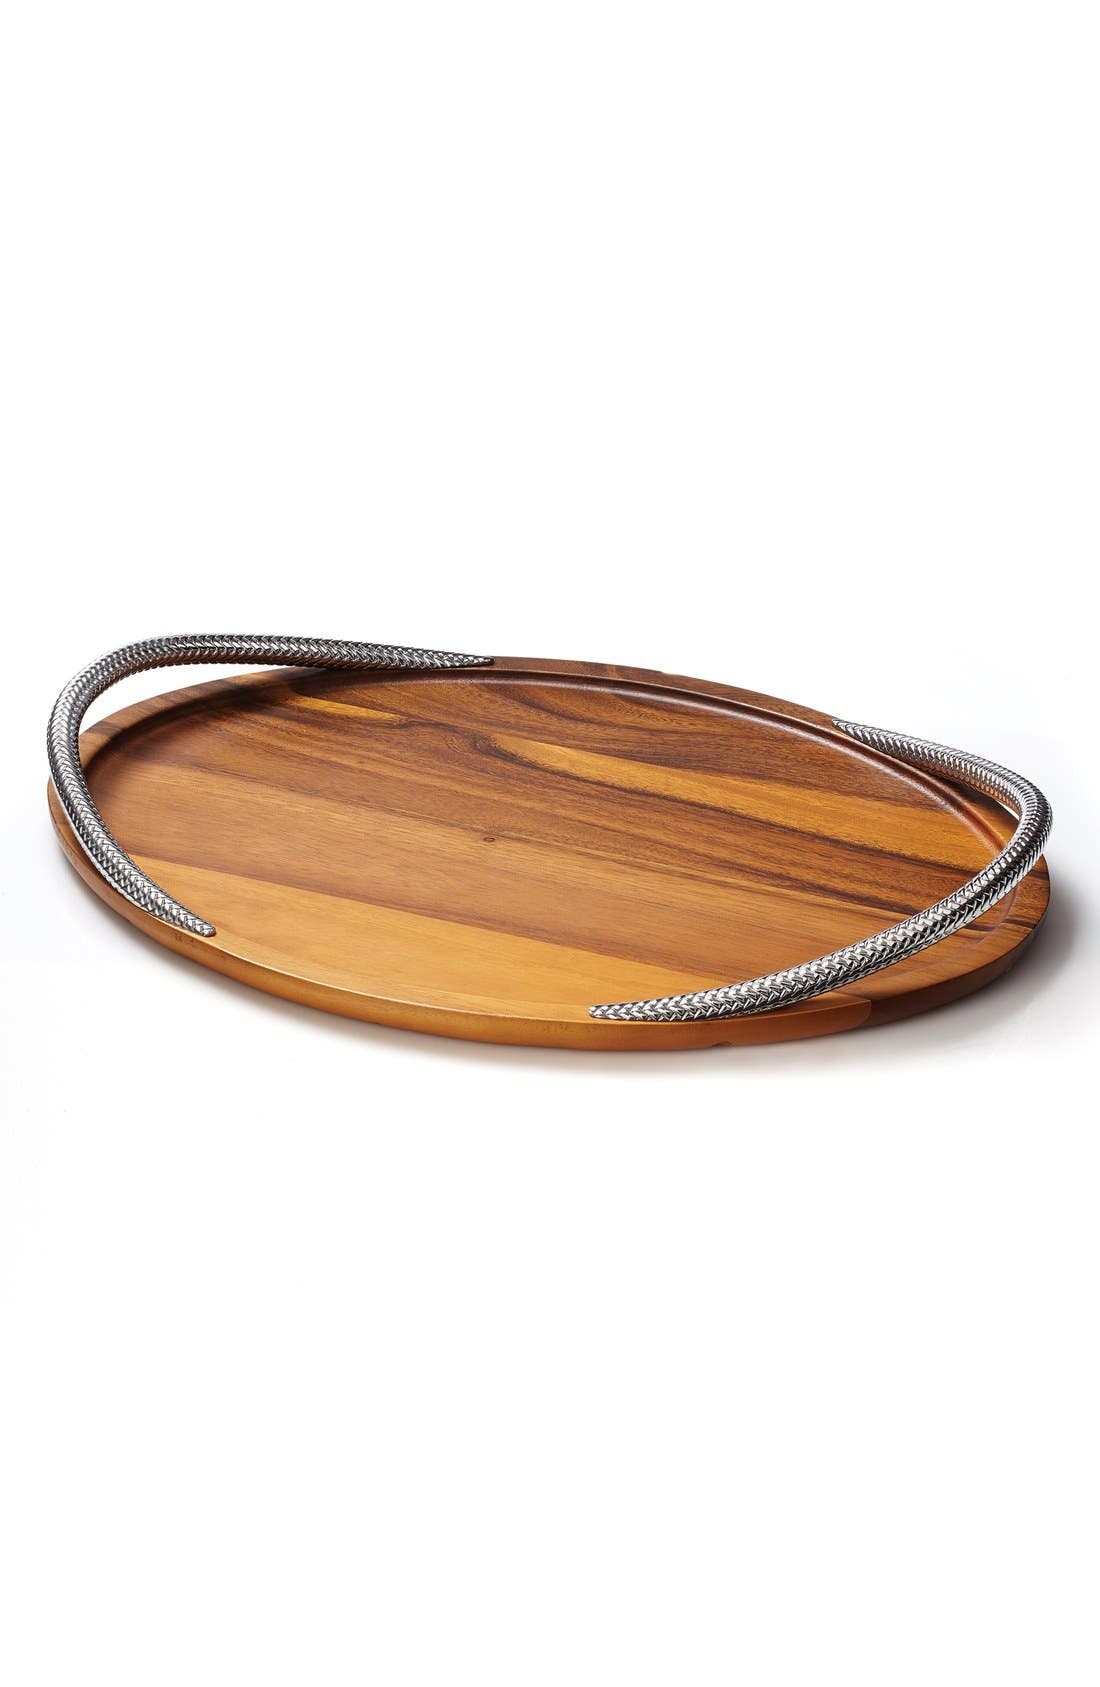 Alternate Image 1 Selected - Nambé Braid Serving Tray